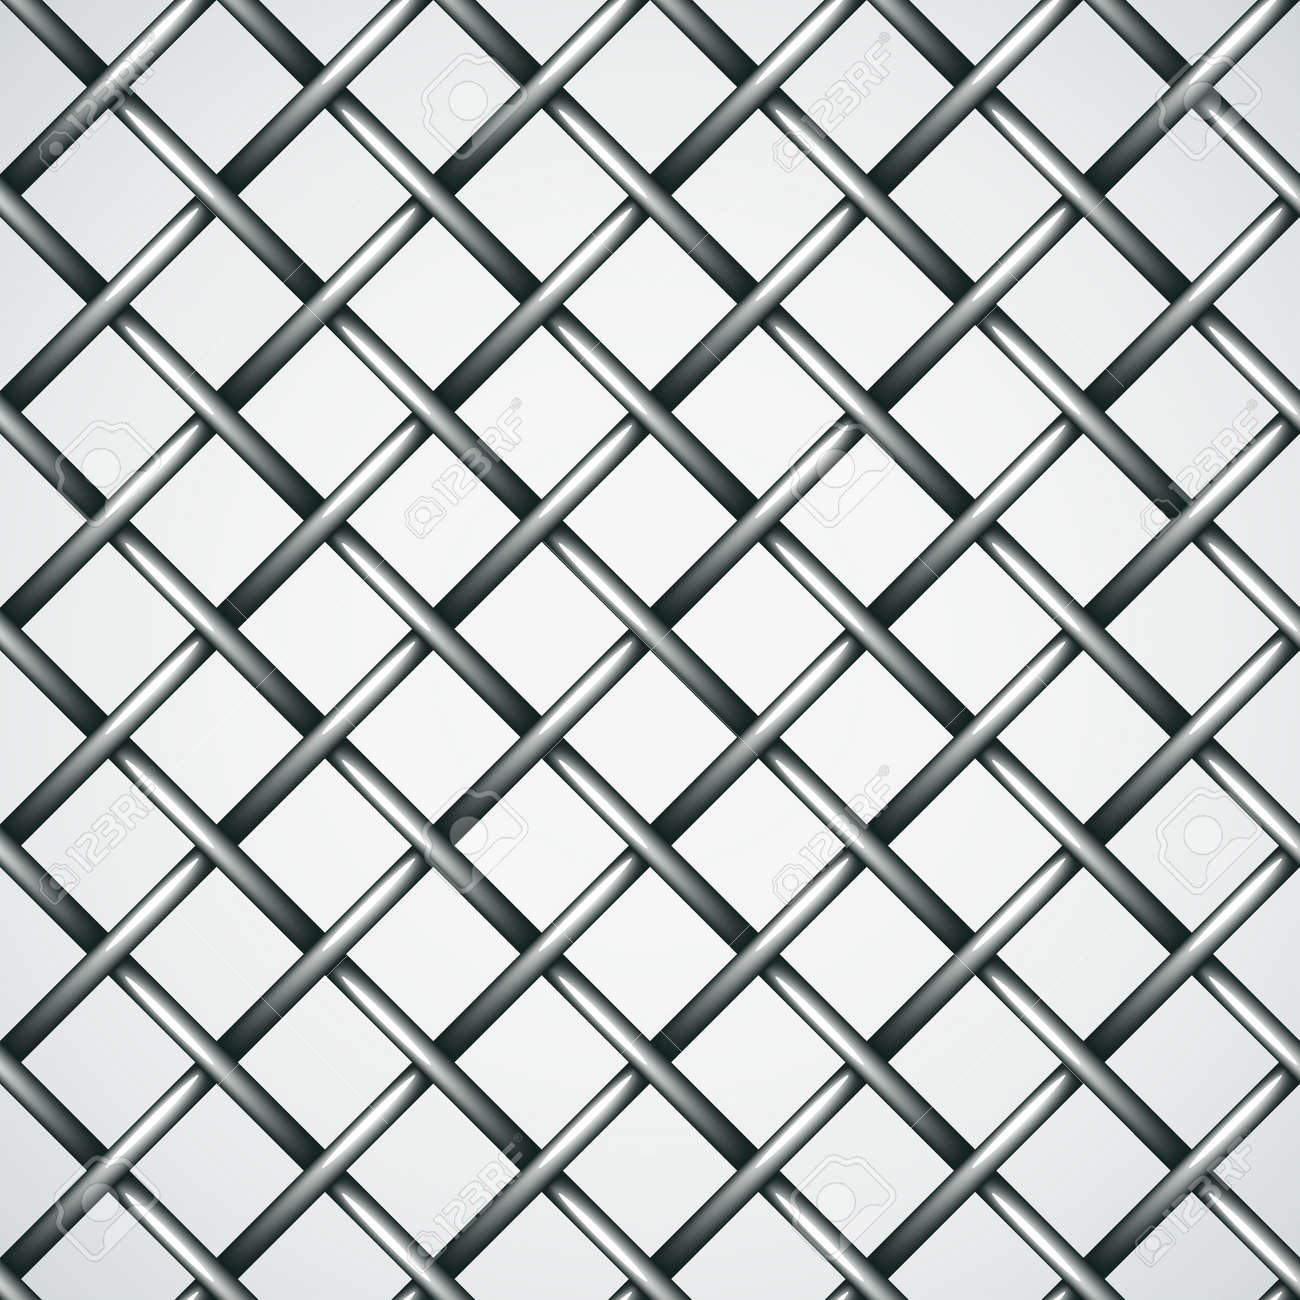 Vector Wire Fence Seamless Background Royalty Free Cliparts, Vectors ...